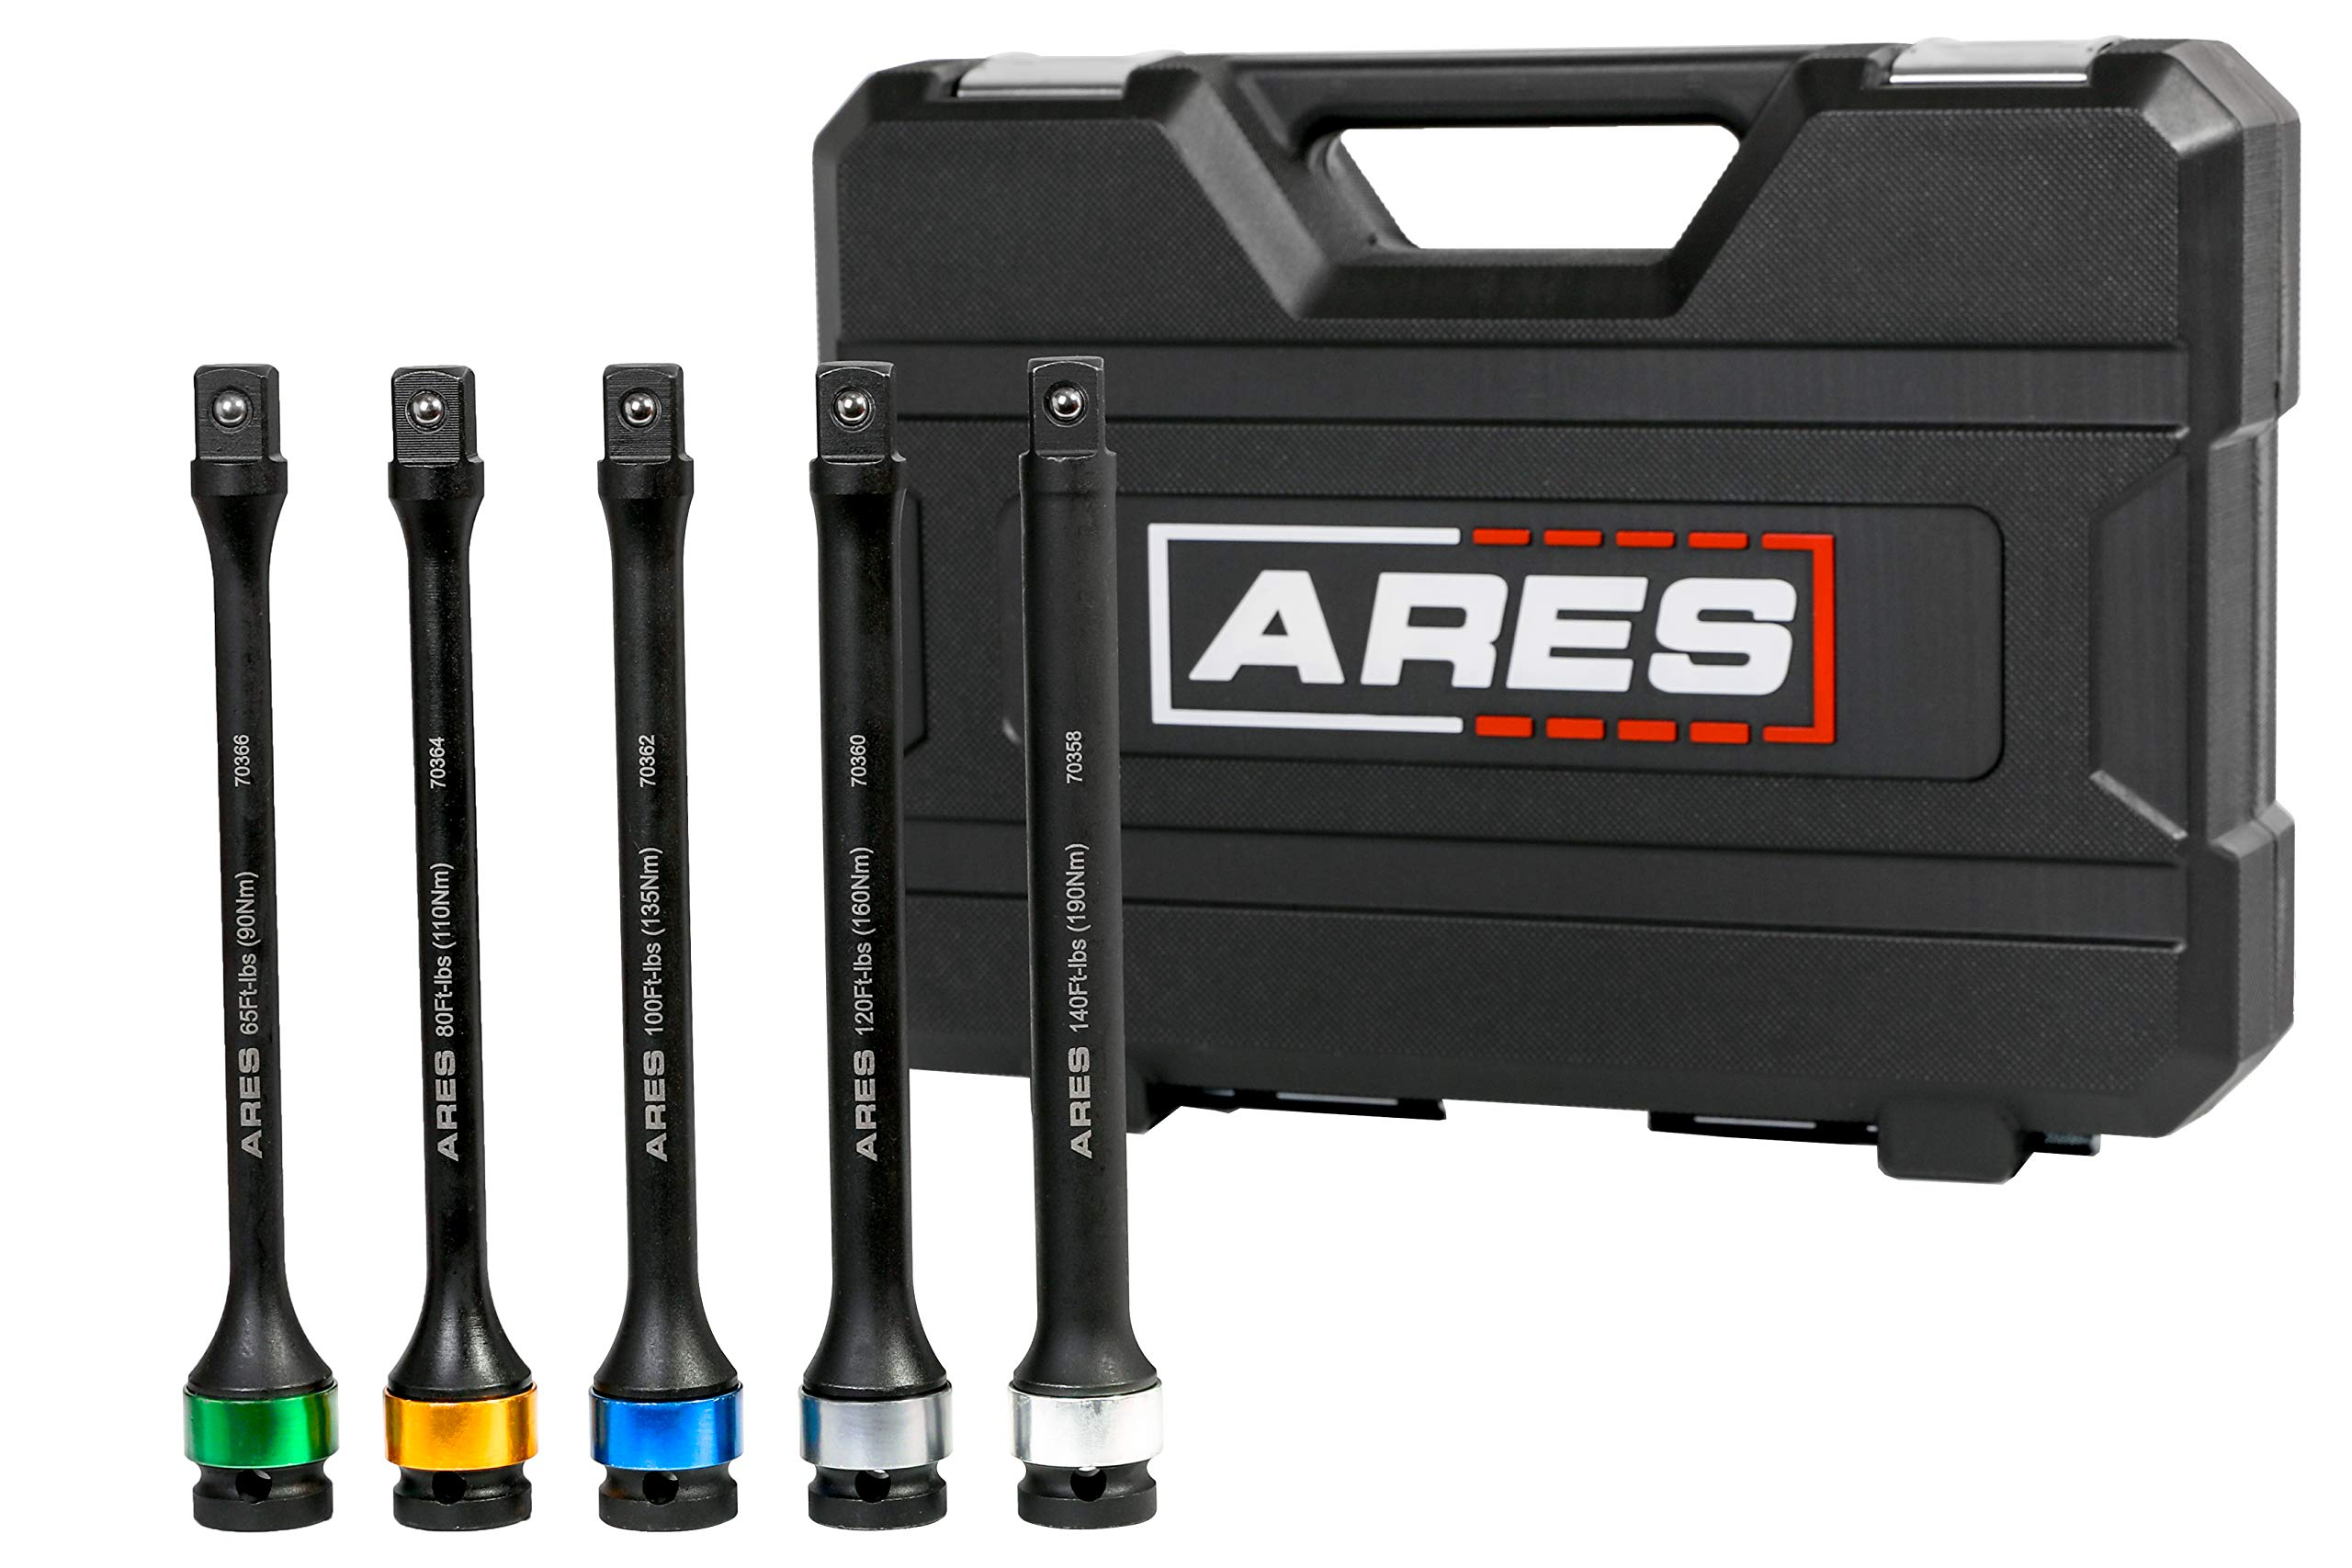 ARES 70367 - Torque Limiting Extension Bar Set - Chrome Moly 1/2-Inch Drive 8-Inch Long Impact Grade Bars - Flex Action Prevents Over-Tightening - Color Coded for Easy Identification by ARES